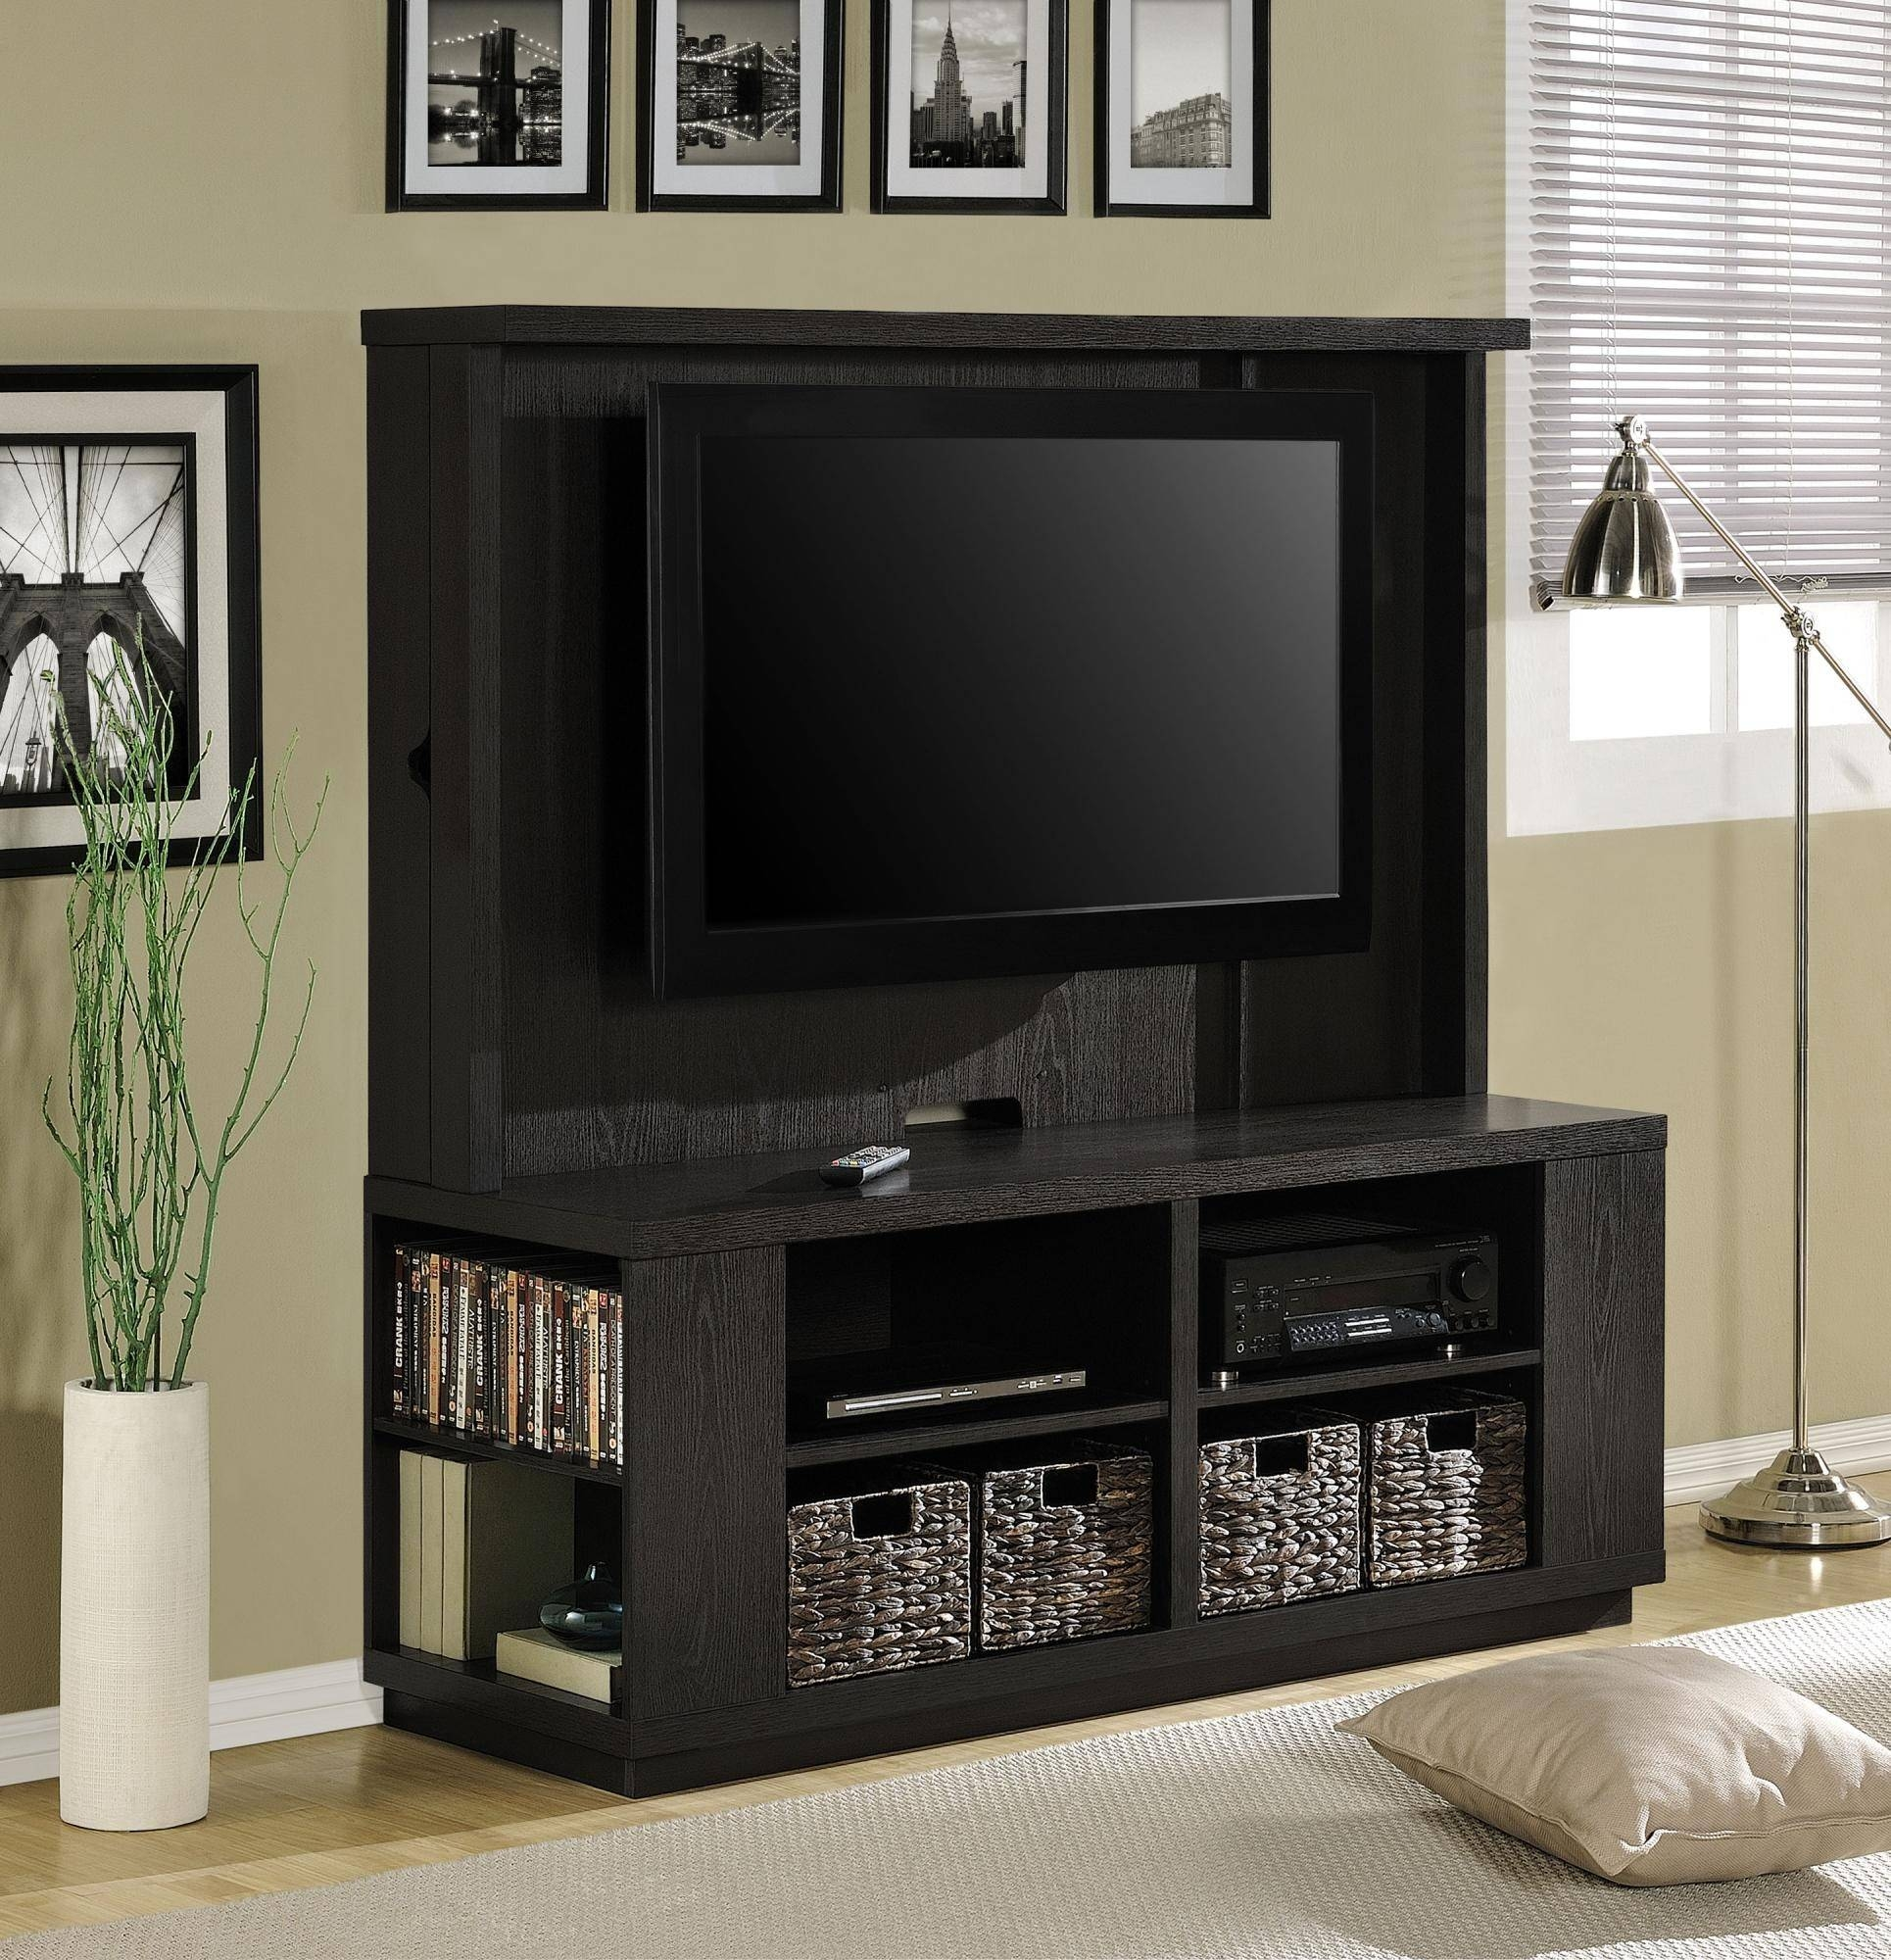 Small Black Wall Mounted Tv Stand With Storage Shelves Plus Woven throughout Storage Tv Stands (Image 9 of 15)